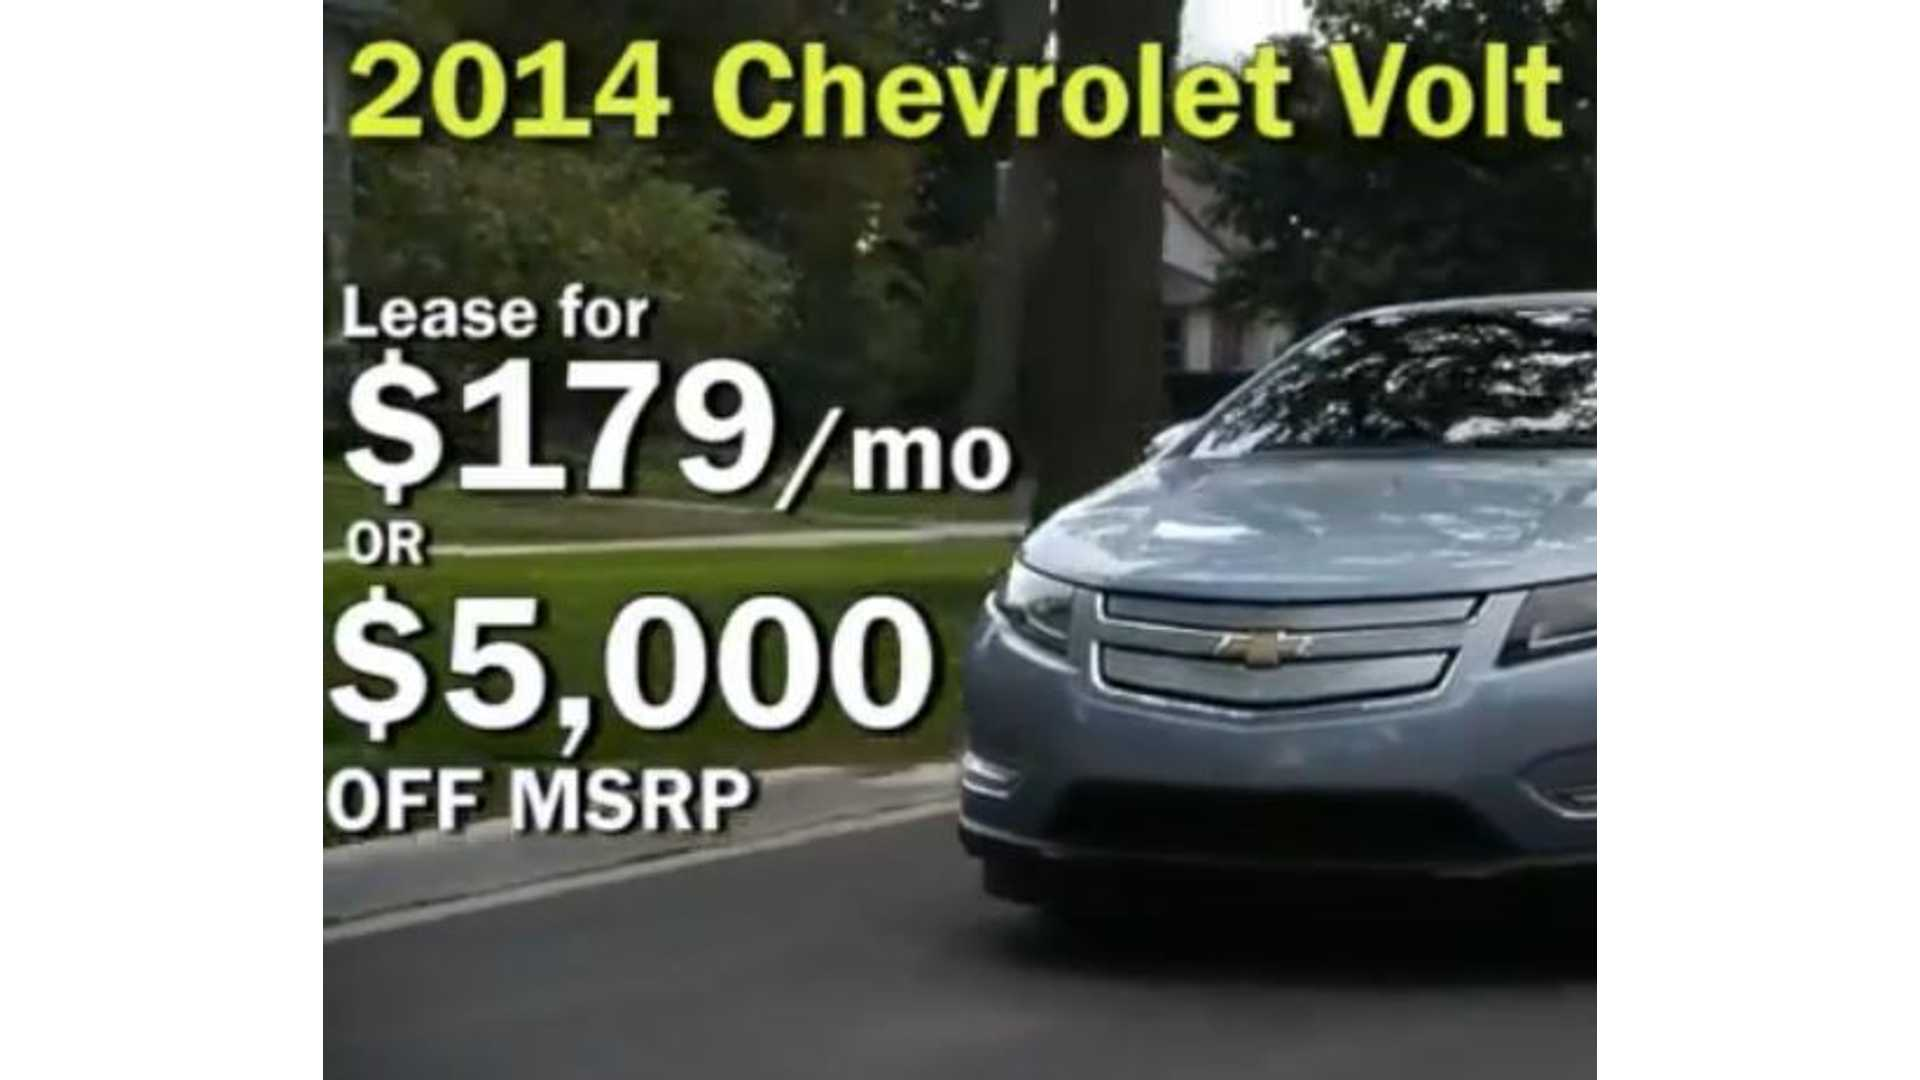 Chevy Volt Lease >> Lease A 2014 Chevy Volt For 179 Per Month Video